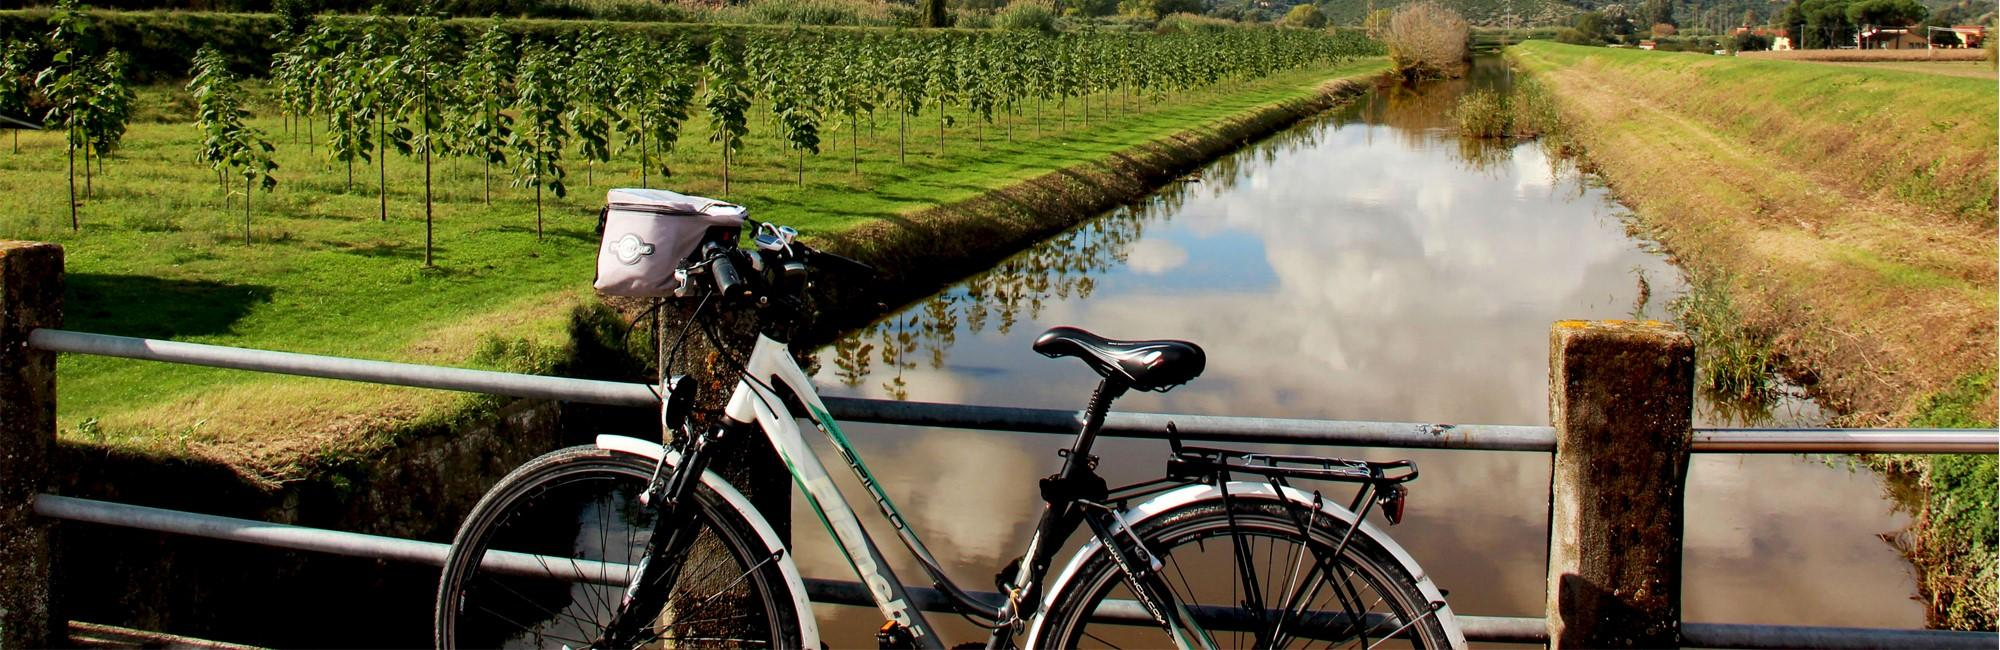 Bicycle parked in an irrigation canal